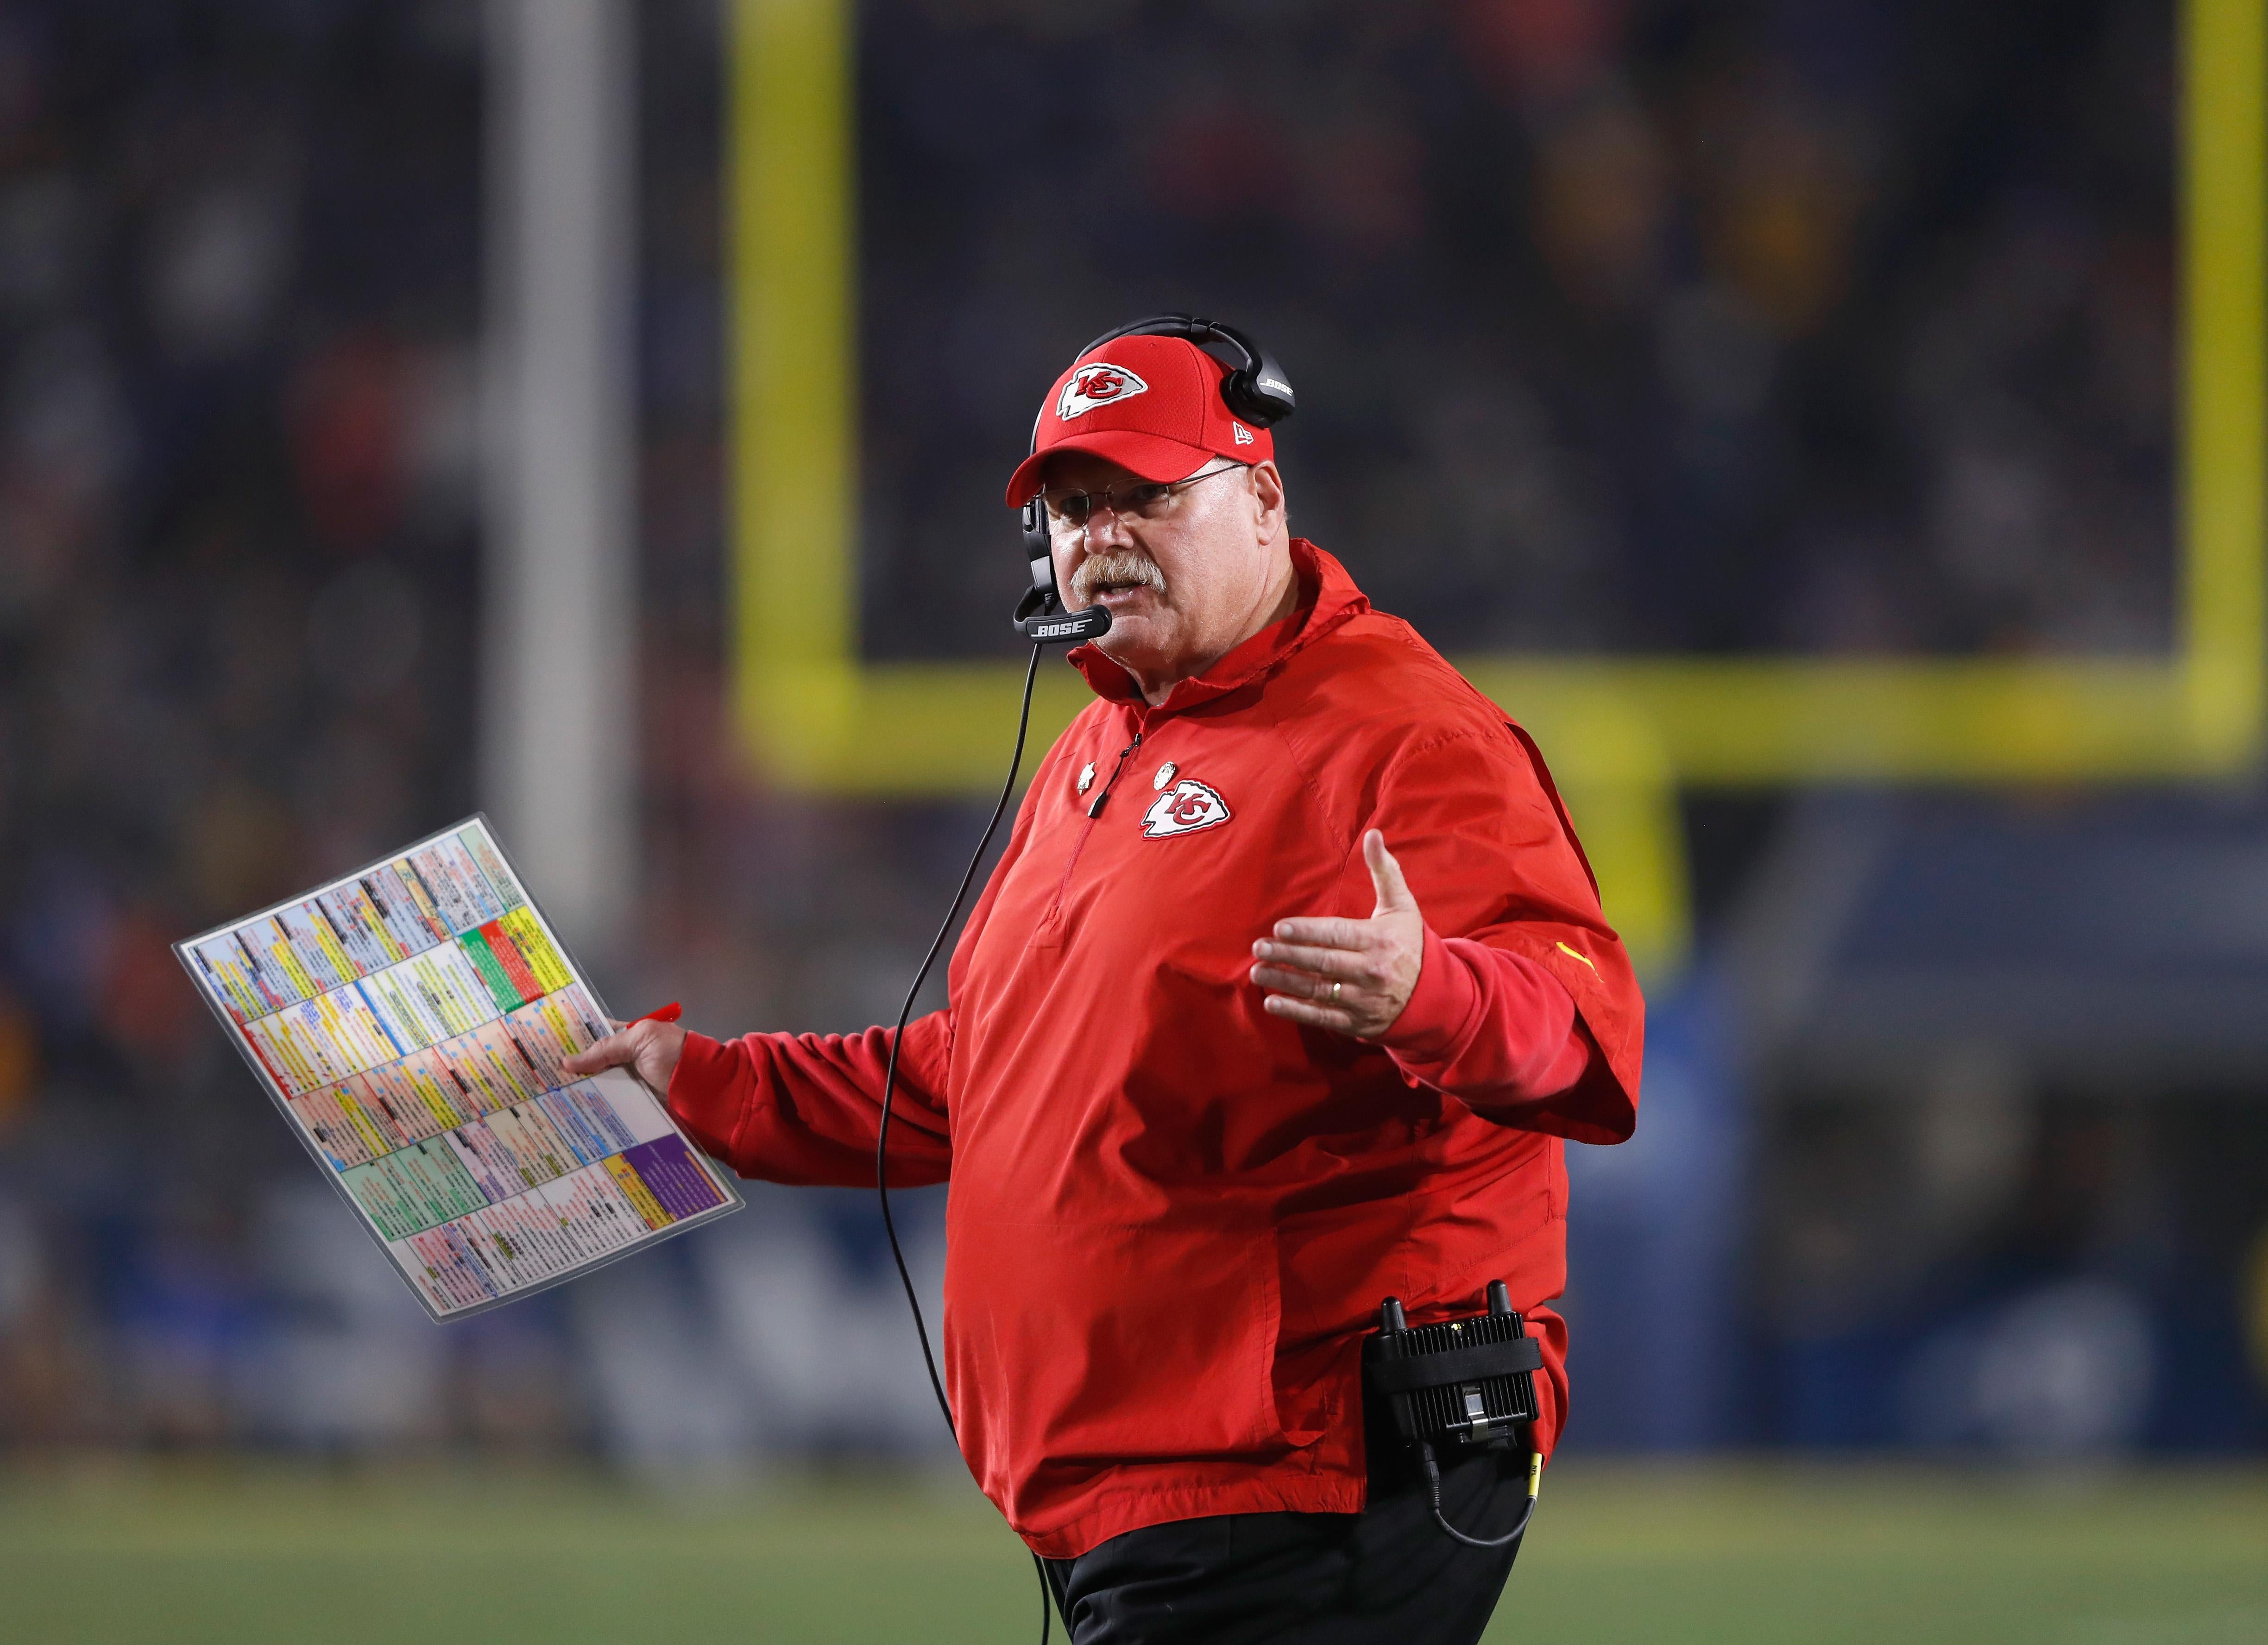 LOS ANGELES, CA - NOVEMBER 19:  Head coach Andy Reid of the Kansas City Chiefs reacts to a referee decision during the second quarter of the game against the Los Angeles Rams at Los Angeles Memorial Coliseum on November 19, 2018 in Los Angeles, California.  (Photo by Sean M. Haffey/Getty Images)